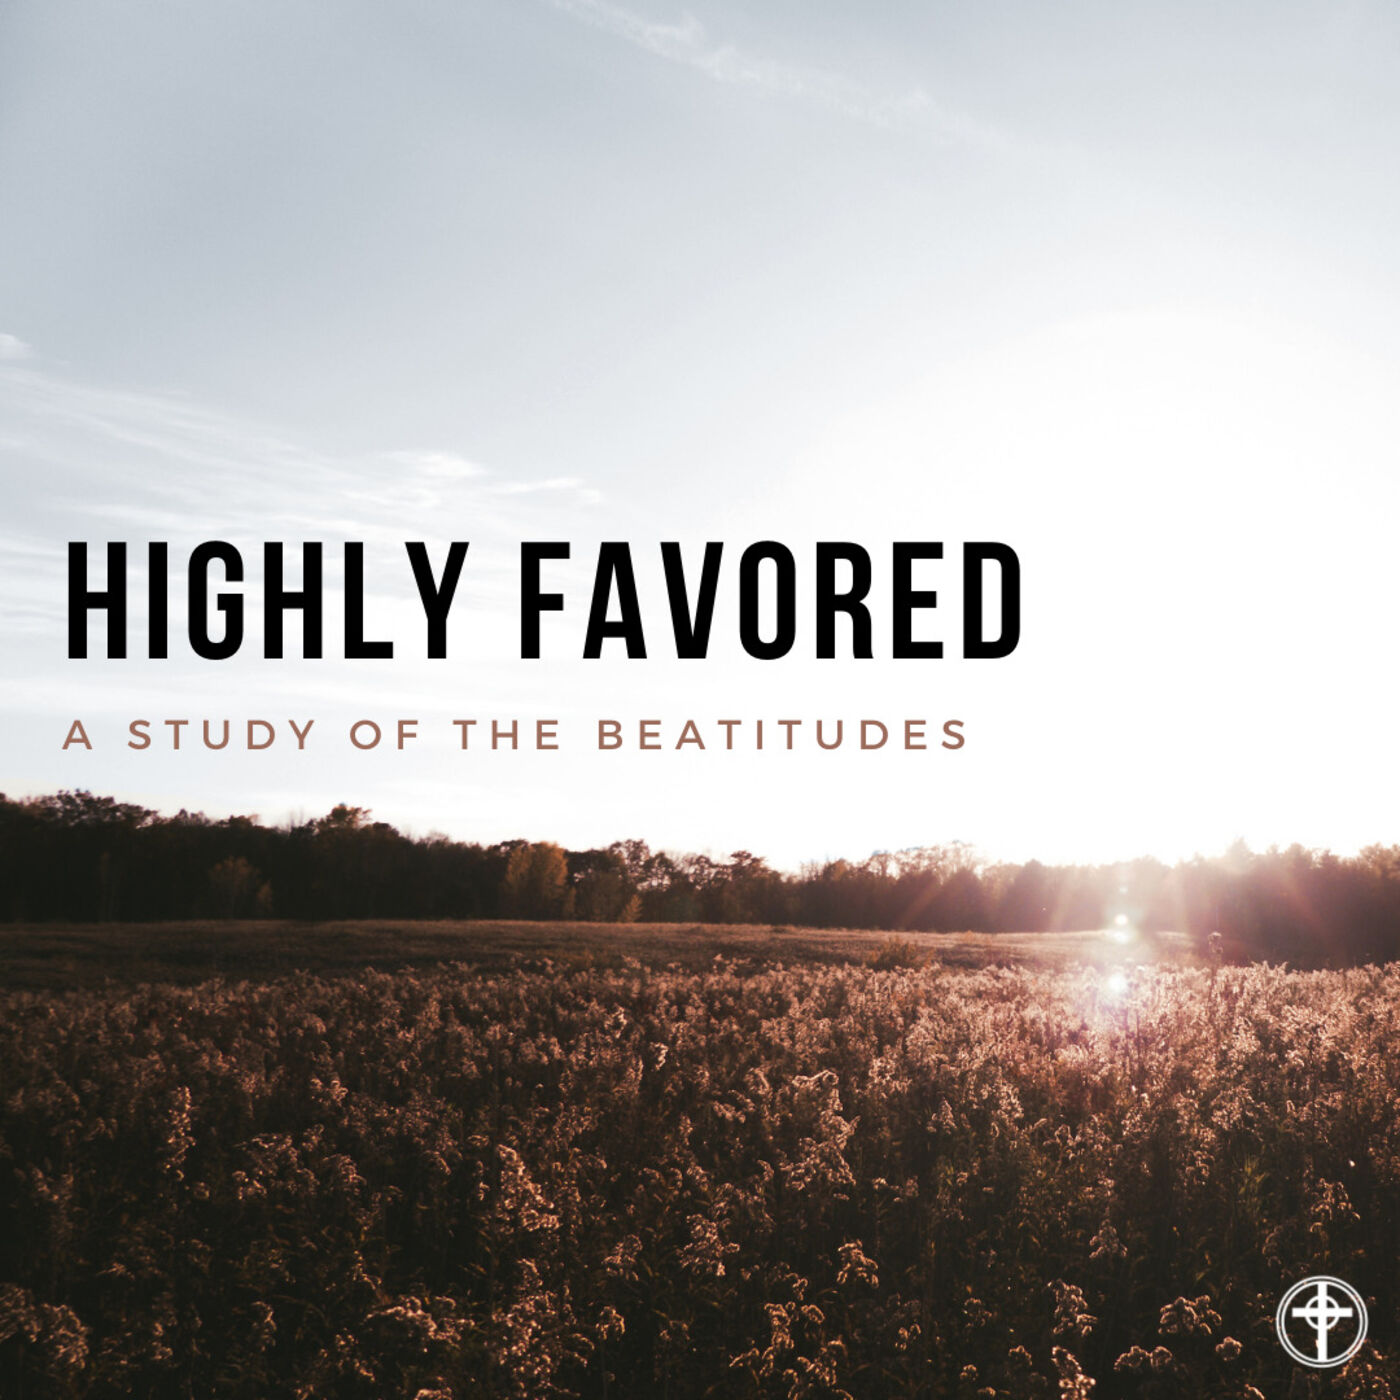 High Favored - Those Who Mourn - Matthew 5:4